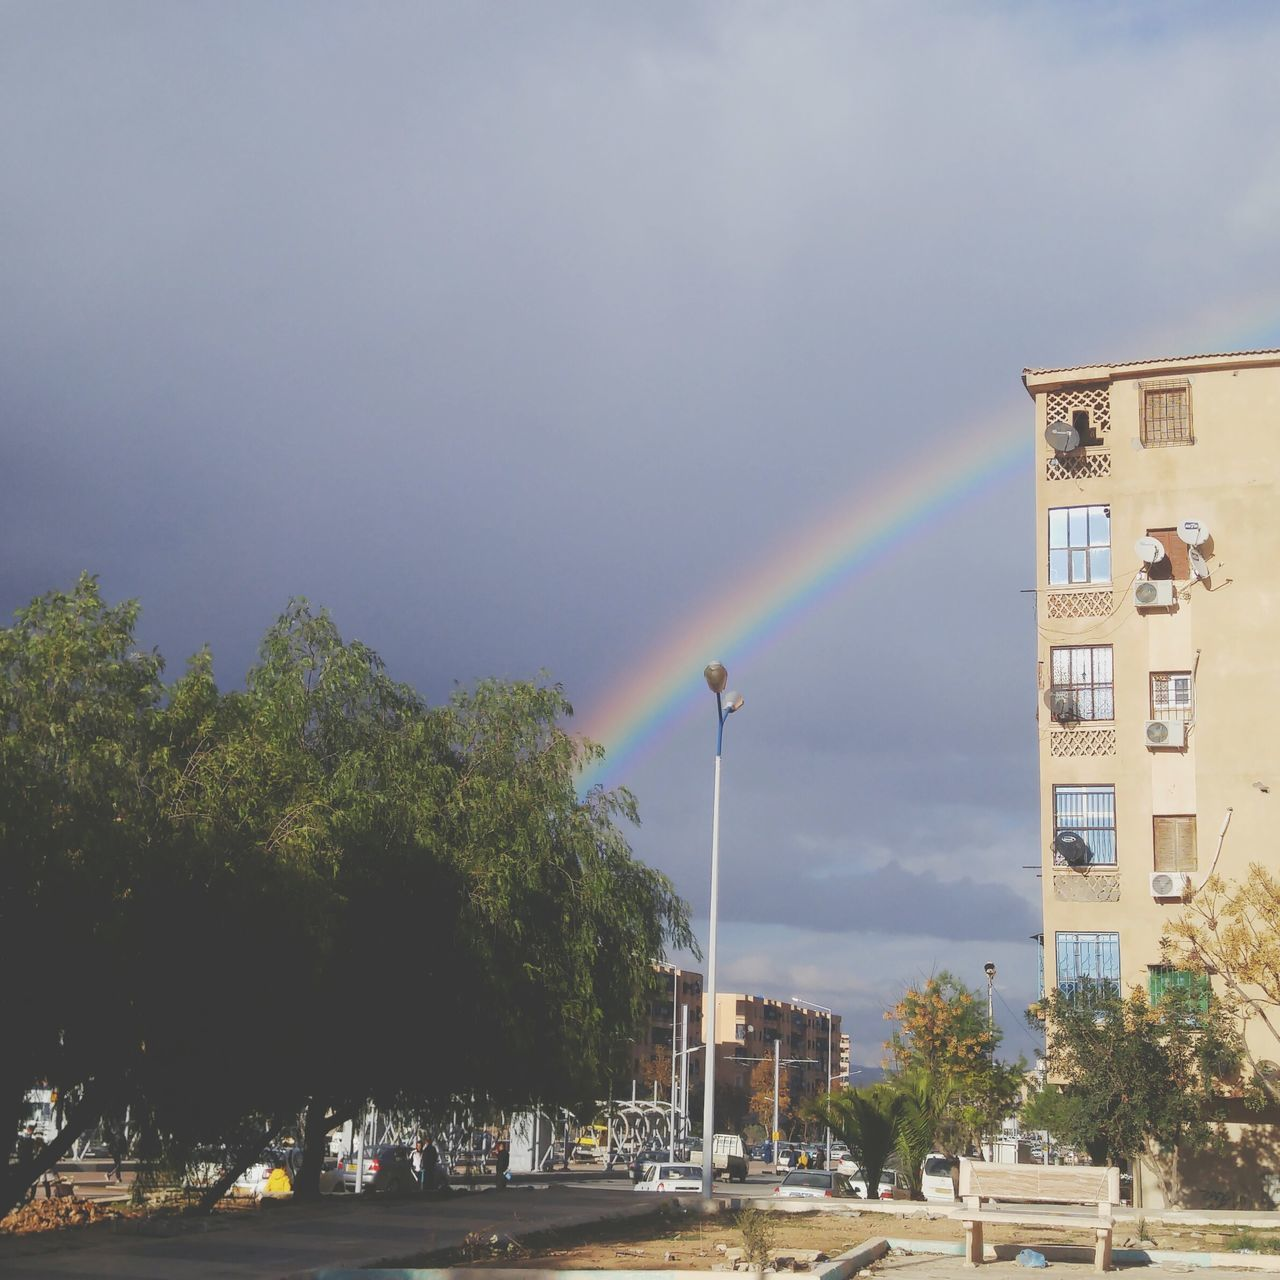 rainbow, tree, building exterior, built structure, architecture, day, car, outdoors, double rainbow, sky, cloud - sky, nature, road, city, no people, beauty in nature